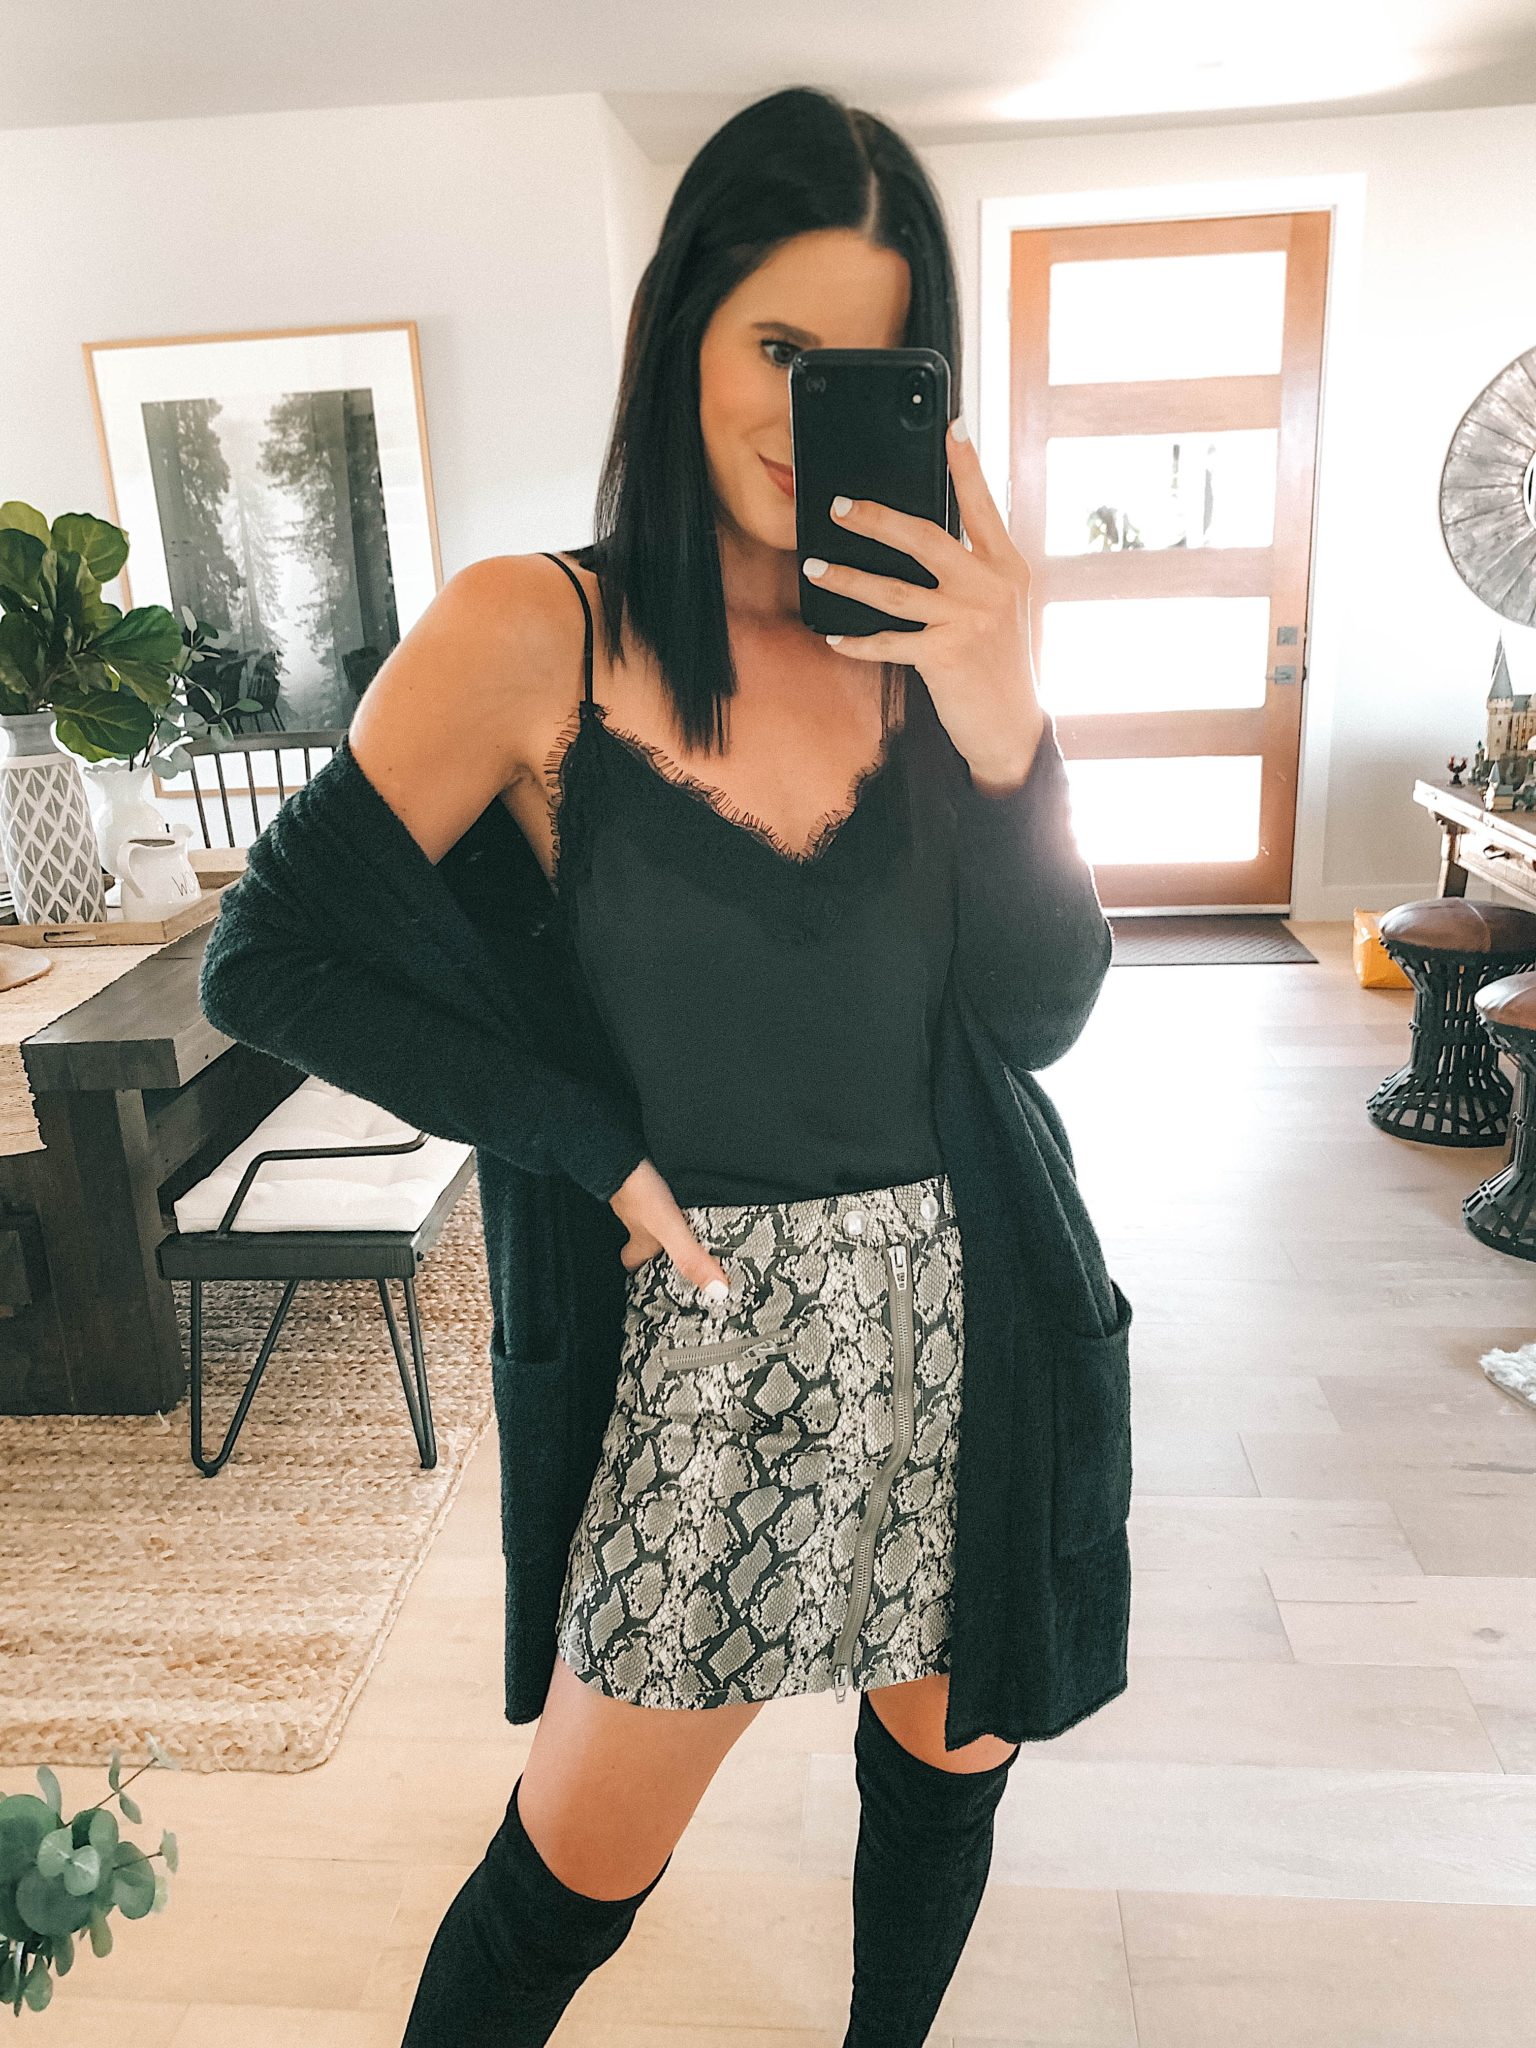 Create a Capsule Wardrobe with Nordstrom Anniversary Sale Pieces by popular Austin fashion blog, Dressed to Kill: image of a woman standing in her house and wearing a Nordstrom BlankNYC Snakeskin Mini Skirt, Barefoot Dreams Cardigan, Steve Madden Over the Knee Boots and BP Lace Cami.